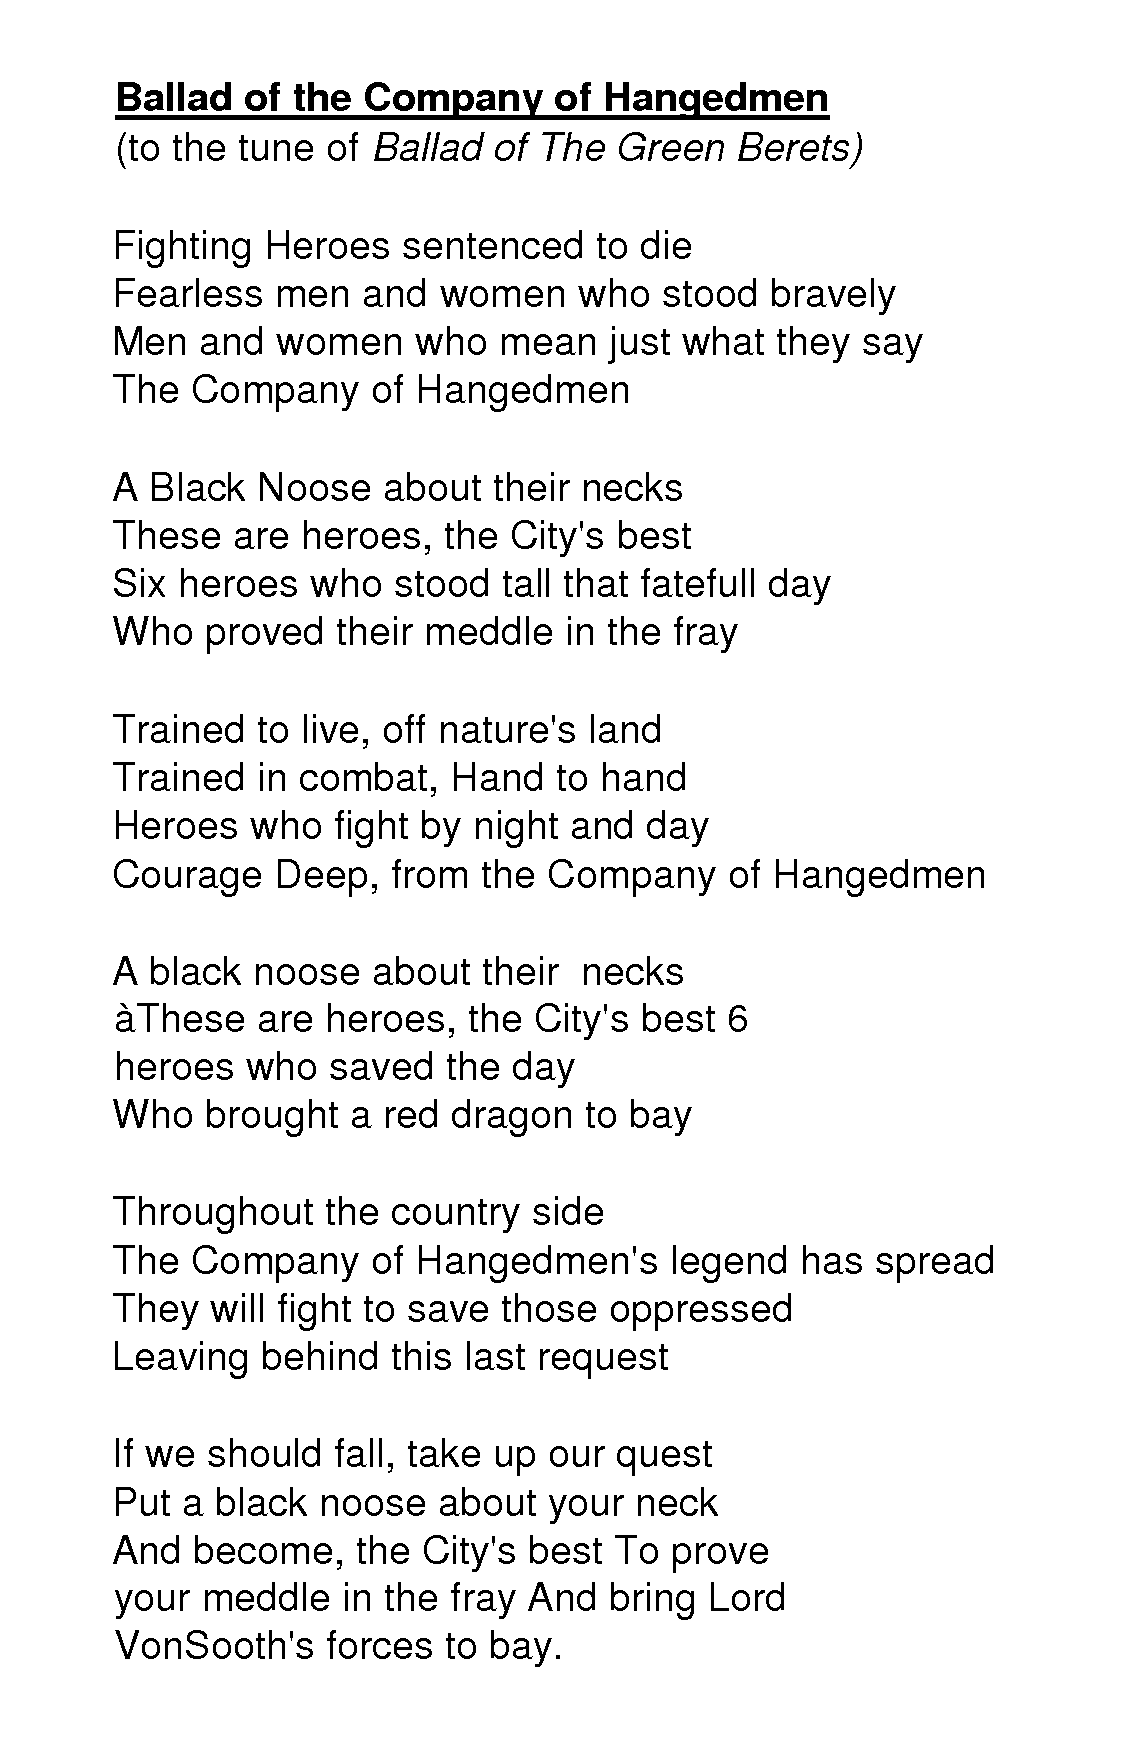 Ballad_of_the_Company_of_Hangedmen.png